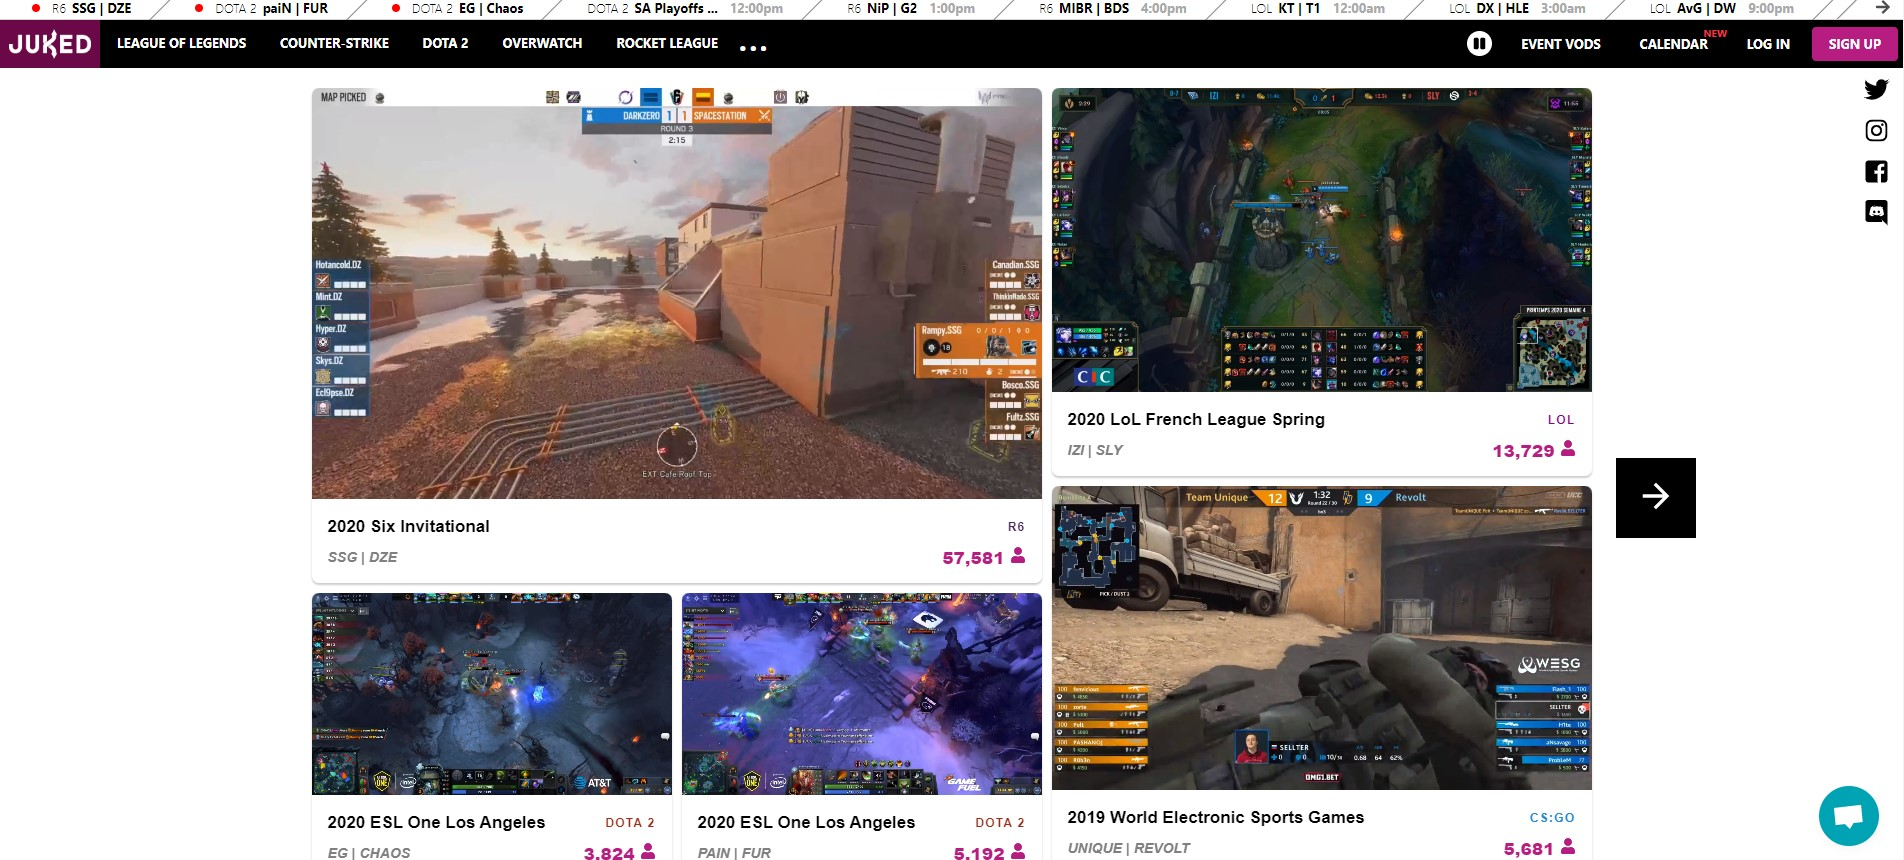 Juked.gg brings esports streams to one location for fans to find them easily.